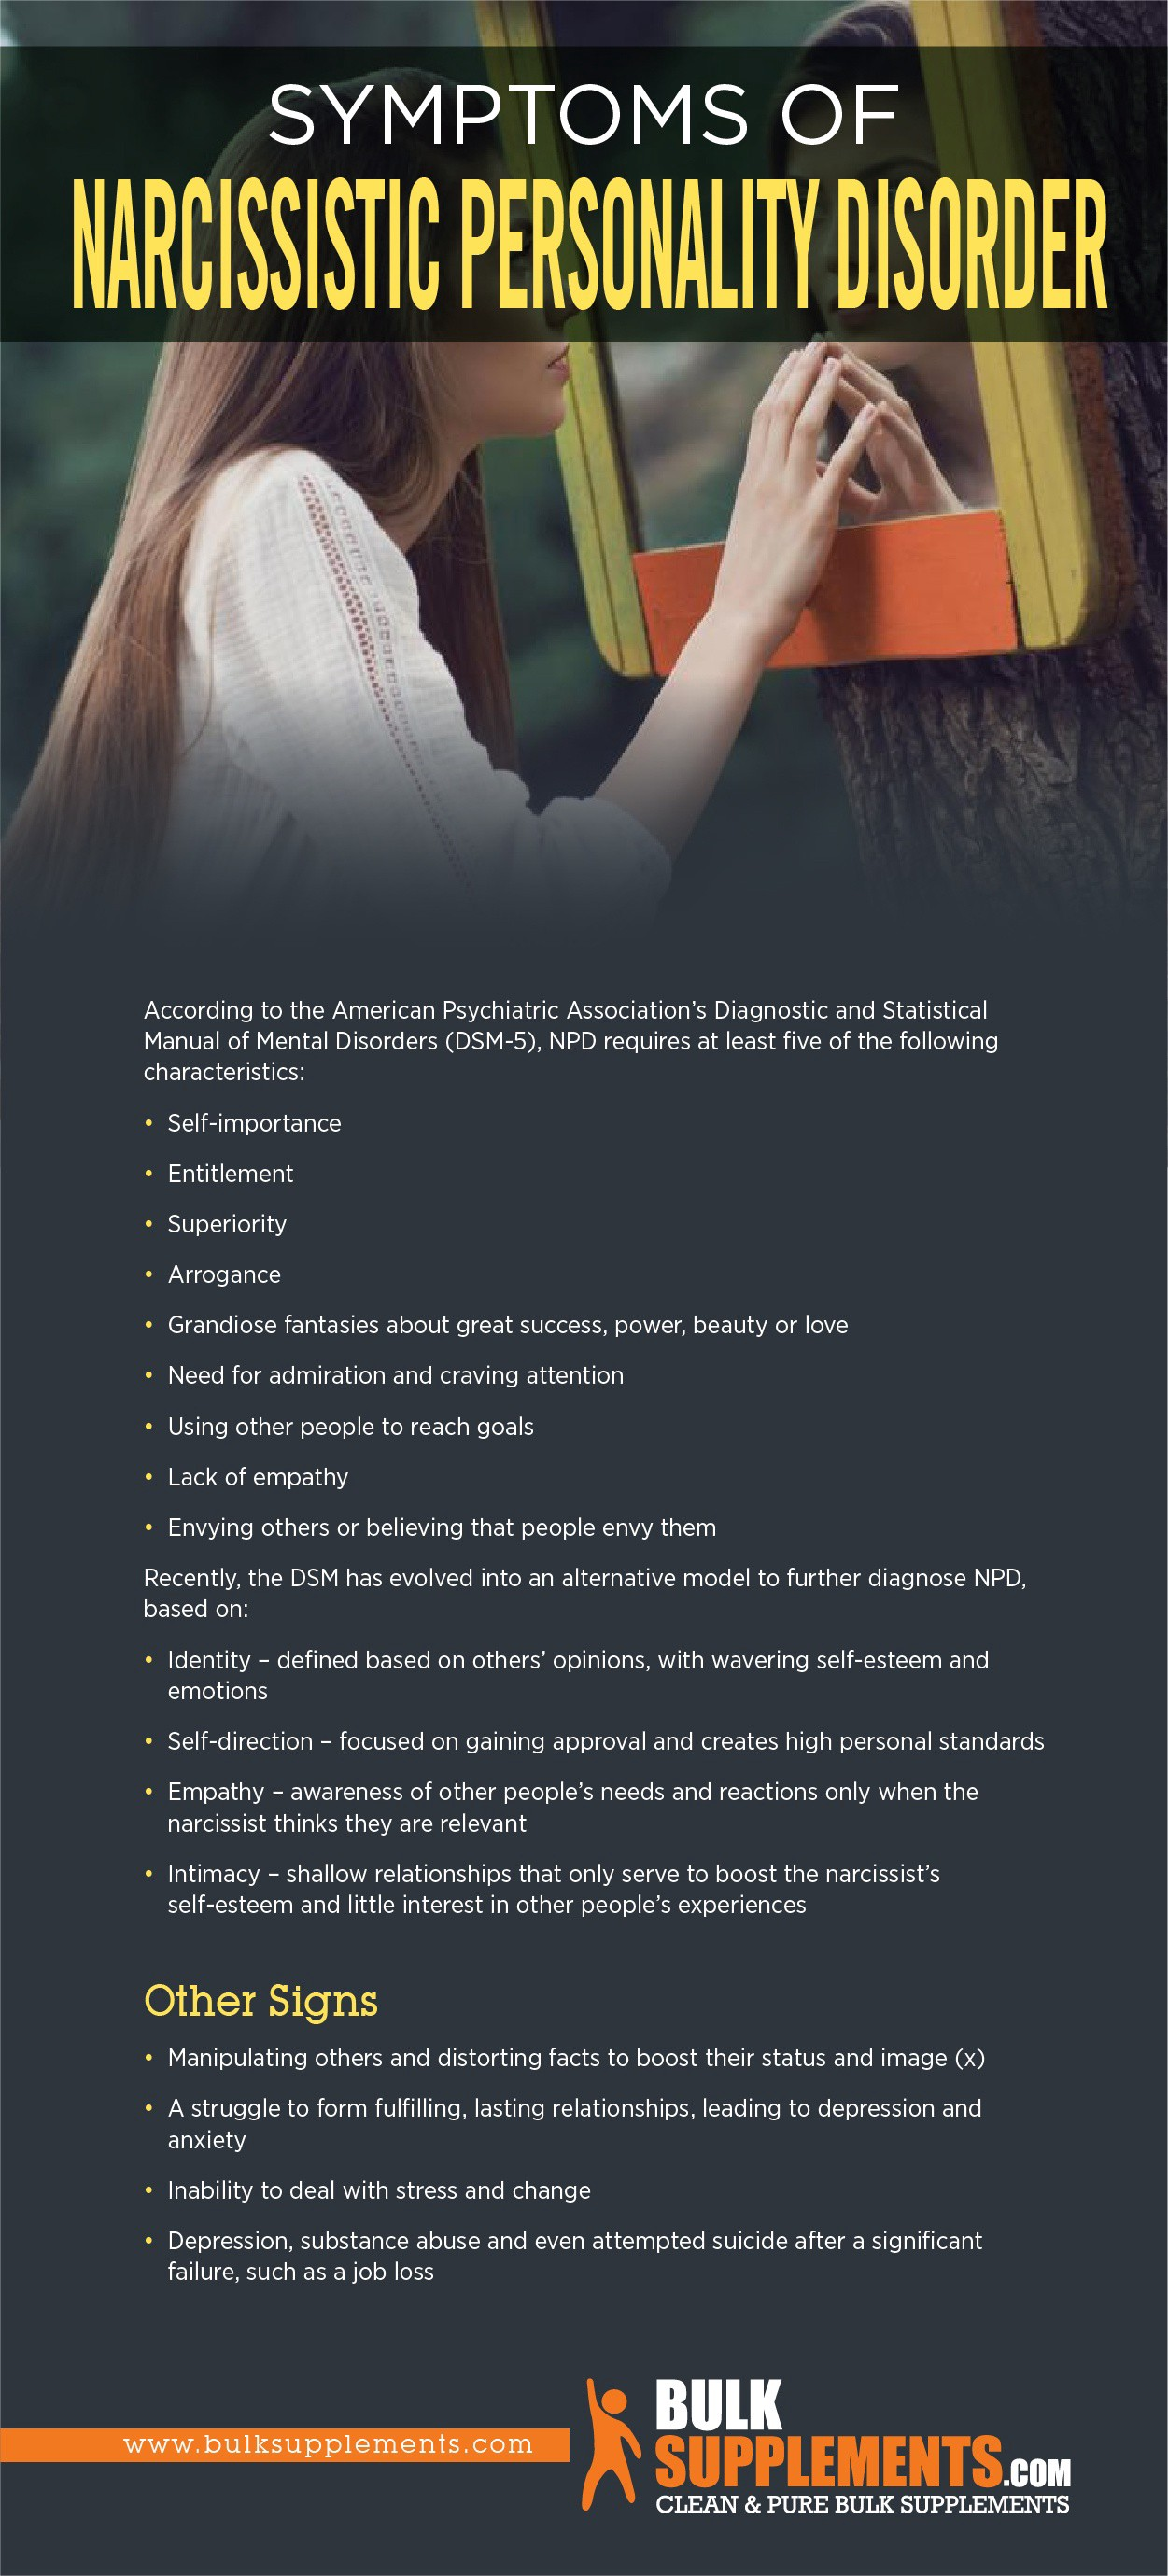 Narcissistic Personality Disorder (NPD): Symptoms, Causes